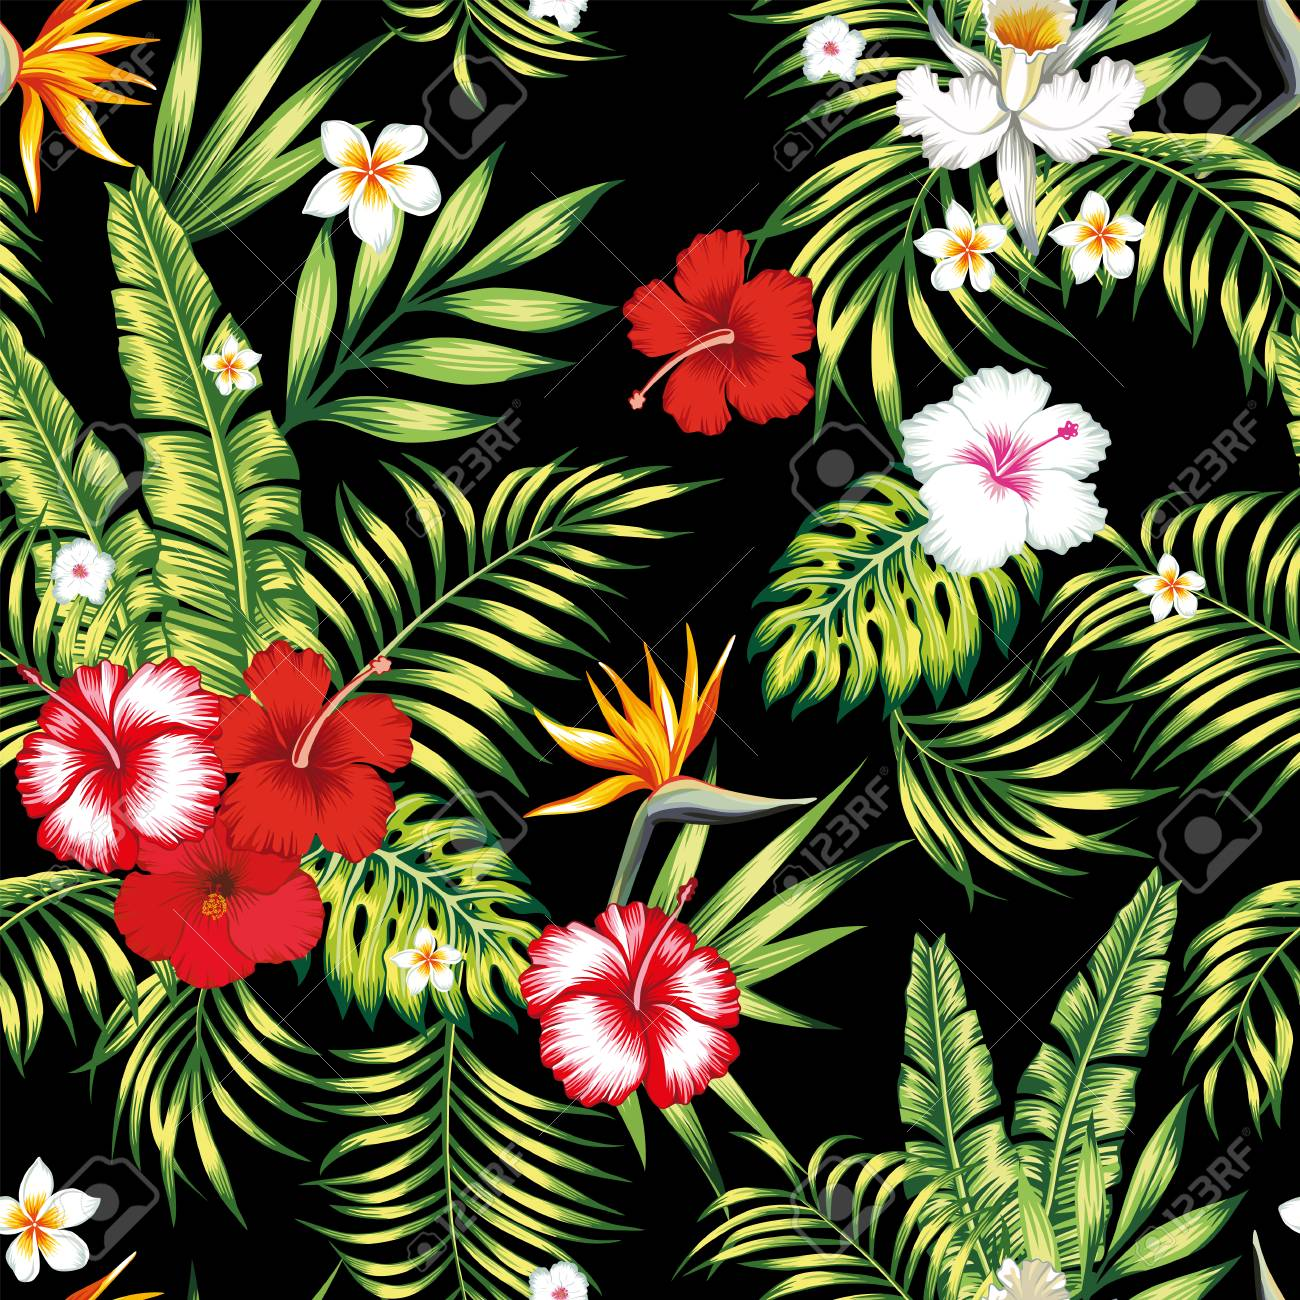 Beauty seamless realistic vector botanical pattern from hibiscus, plumeria, orchid, bird of paradise flowers and palm, banana, monstera leaves on the black background - 122038796